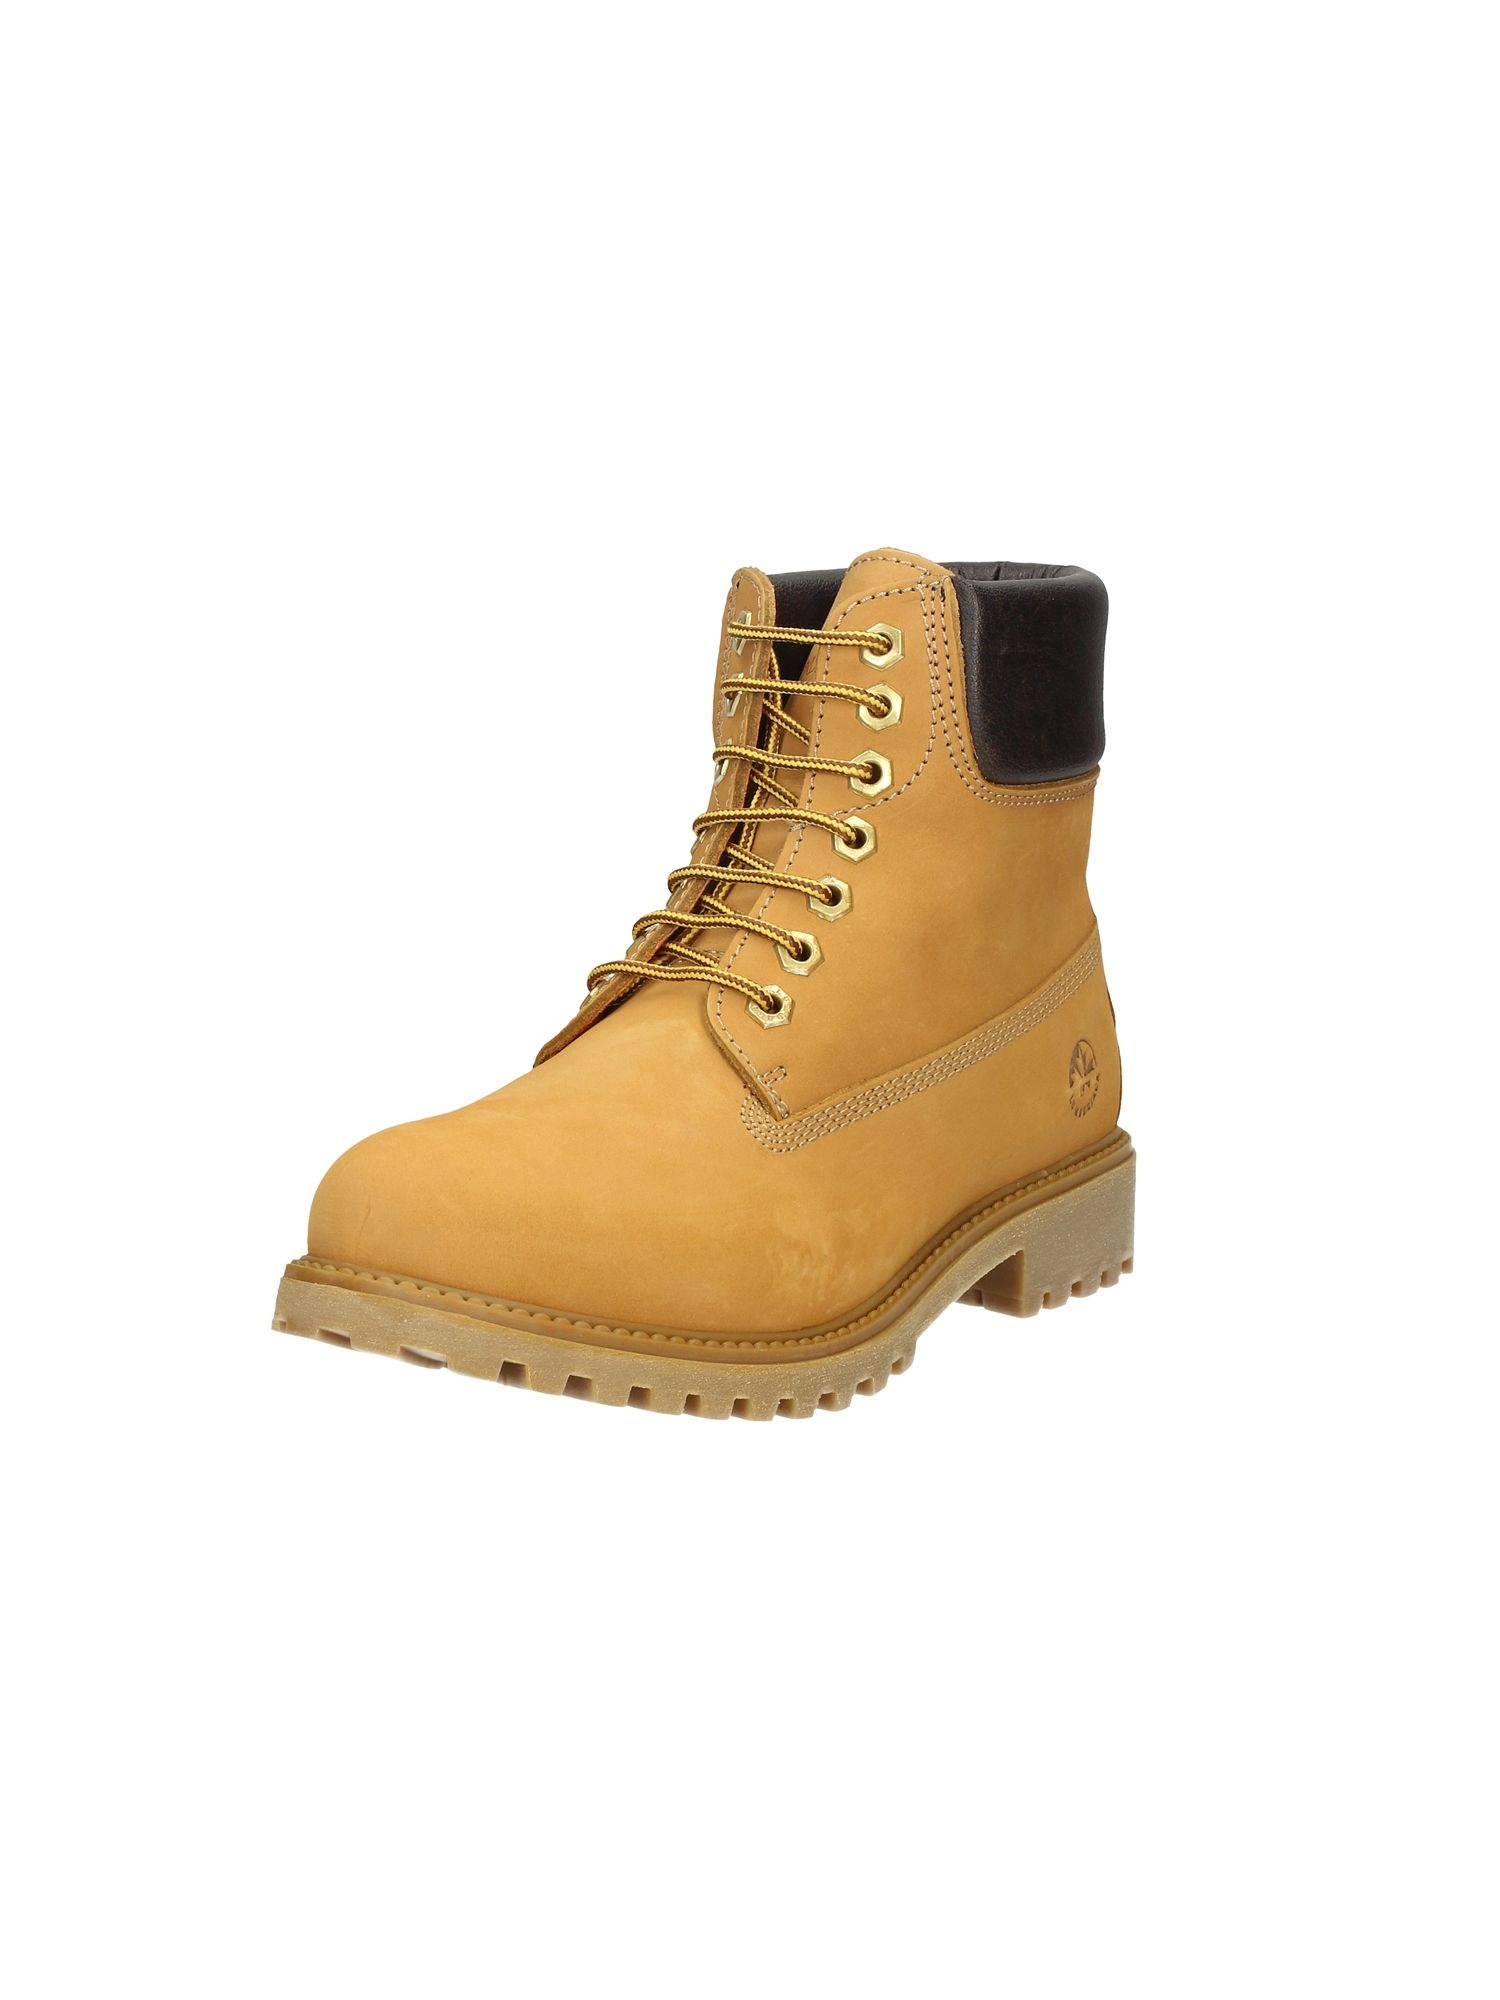 competitive price dee88 a2f7c GialloUomo GialloUomo Lumberjack GialloUomo Lumberjack ...